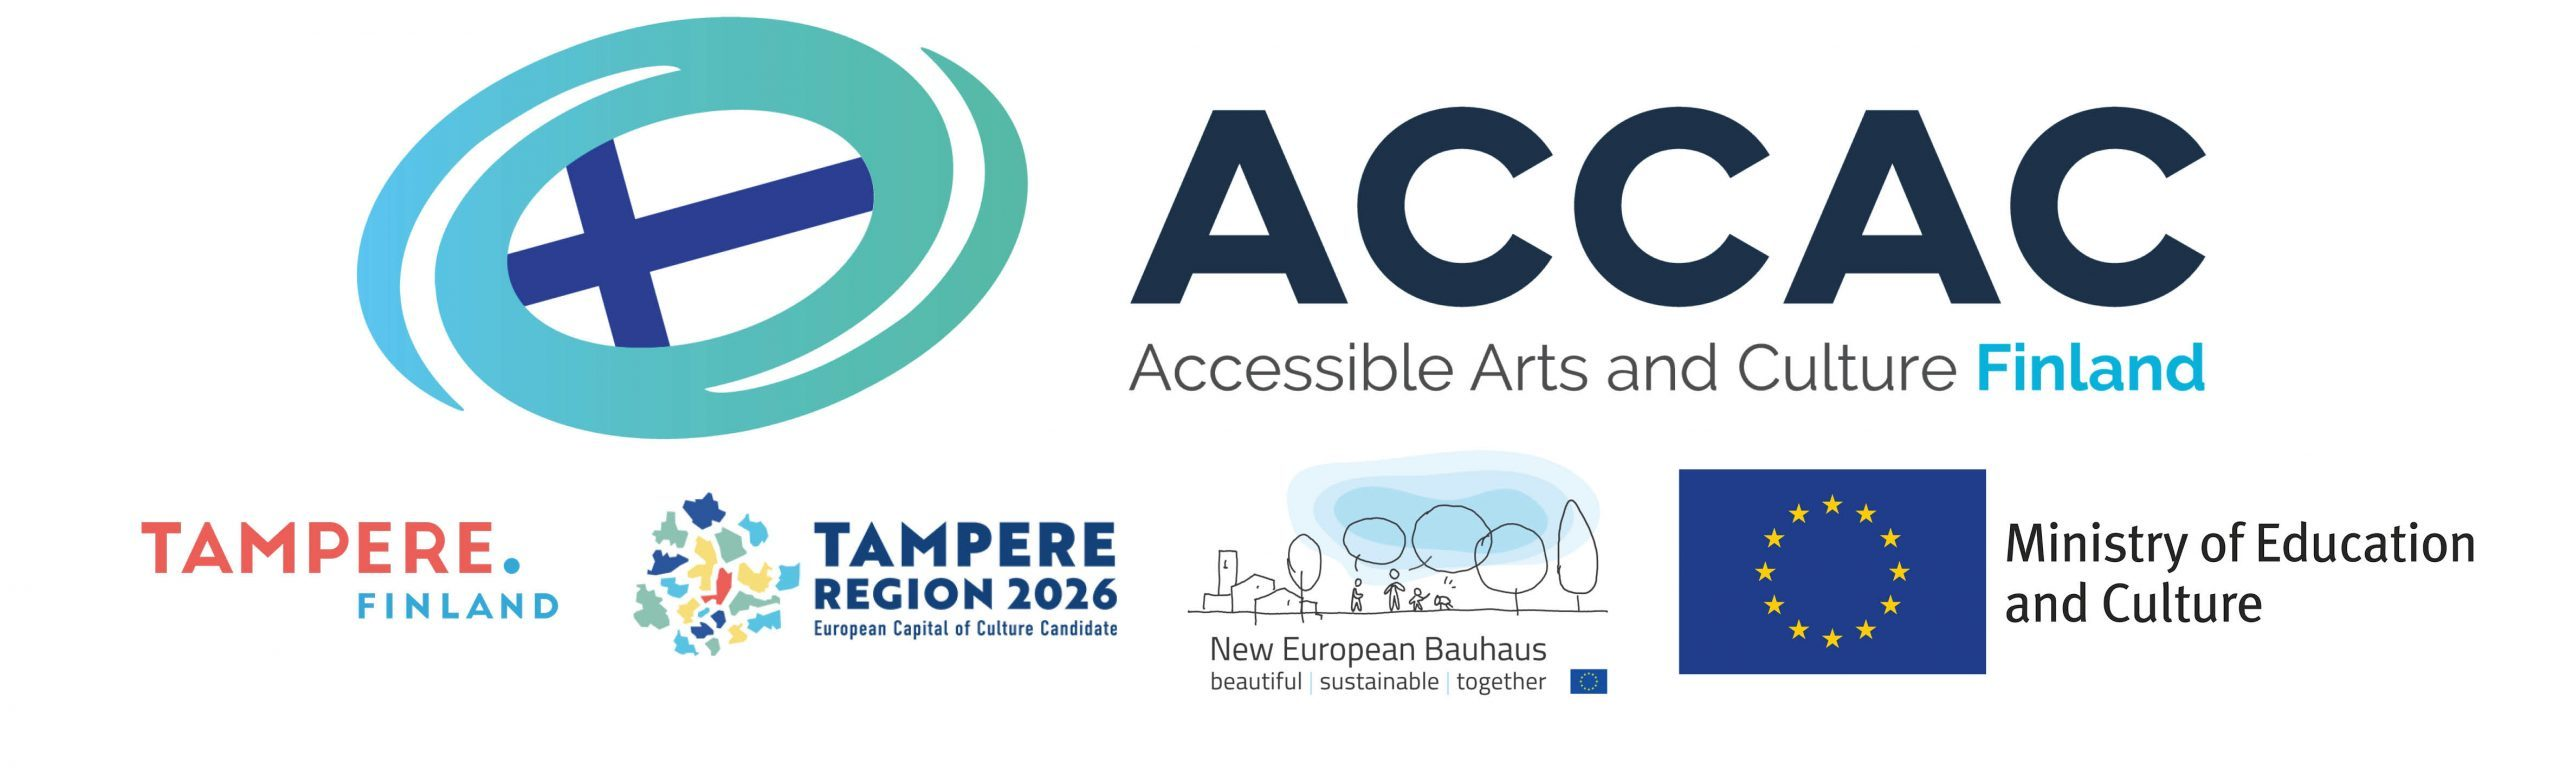 ACCAC Finland